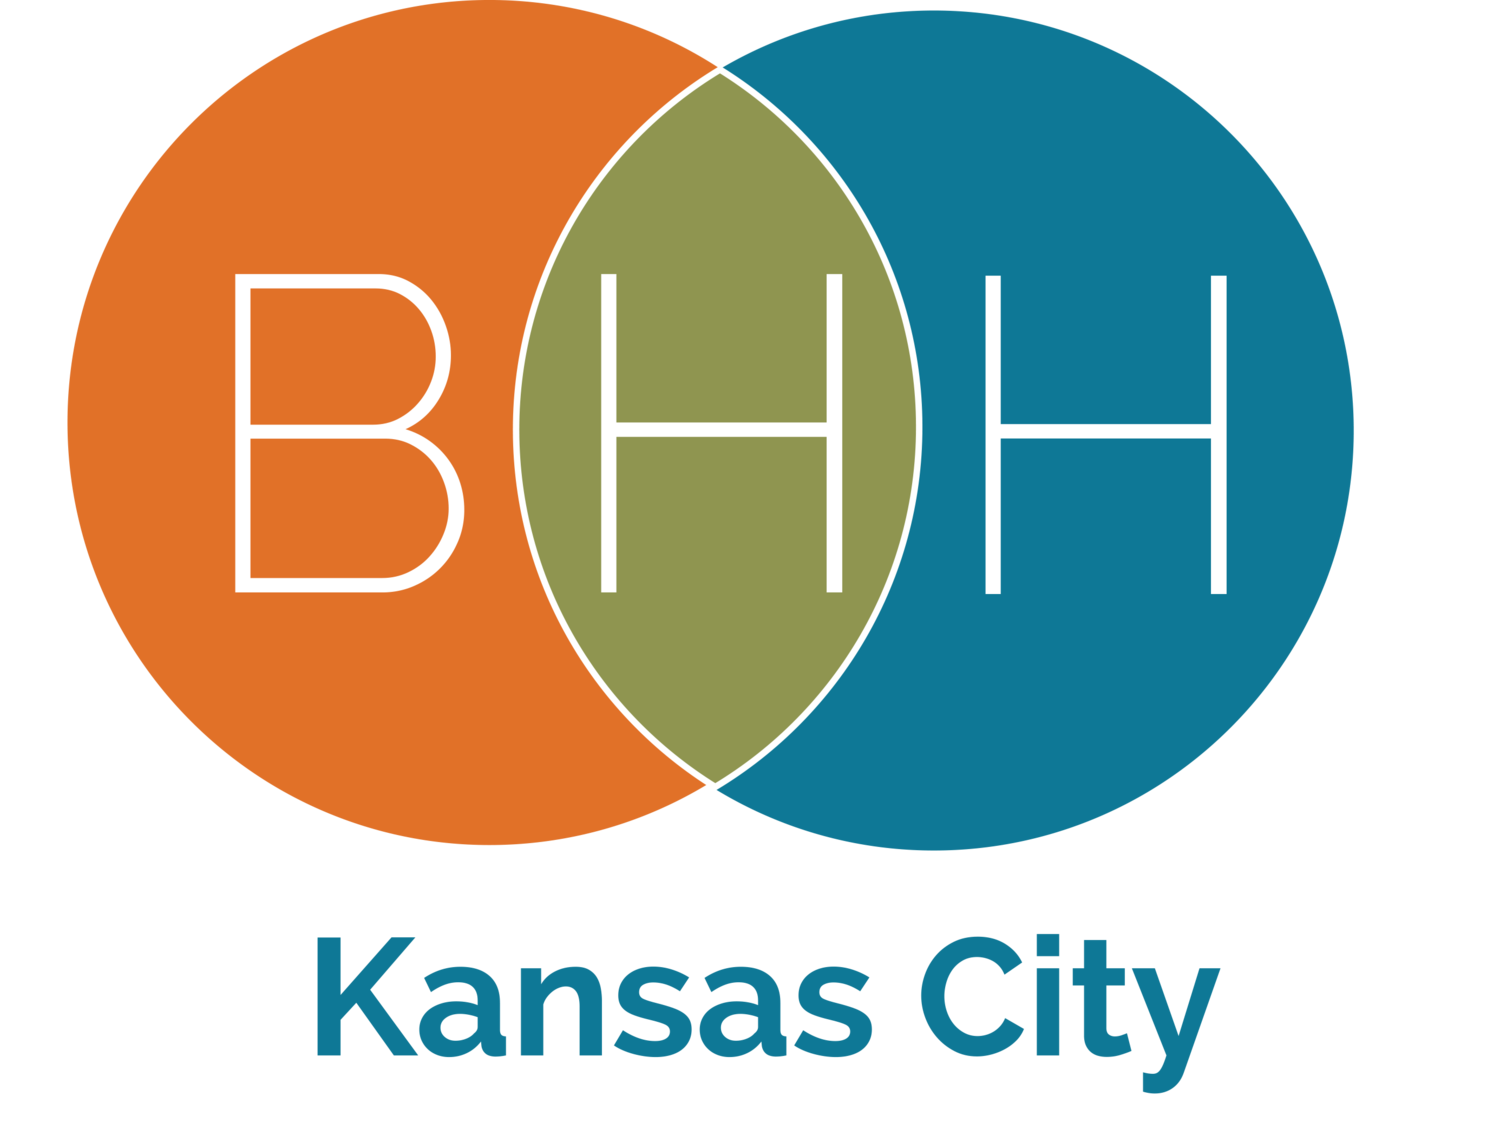 Behavioral Health Kansas City